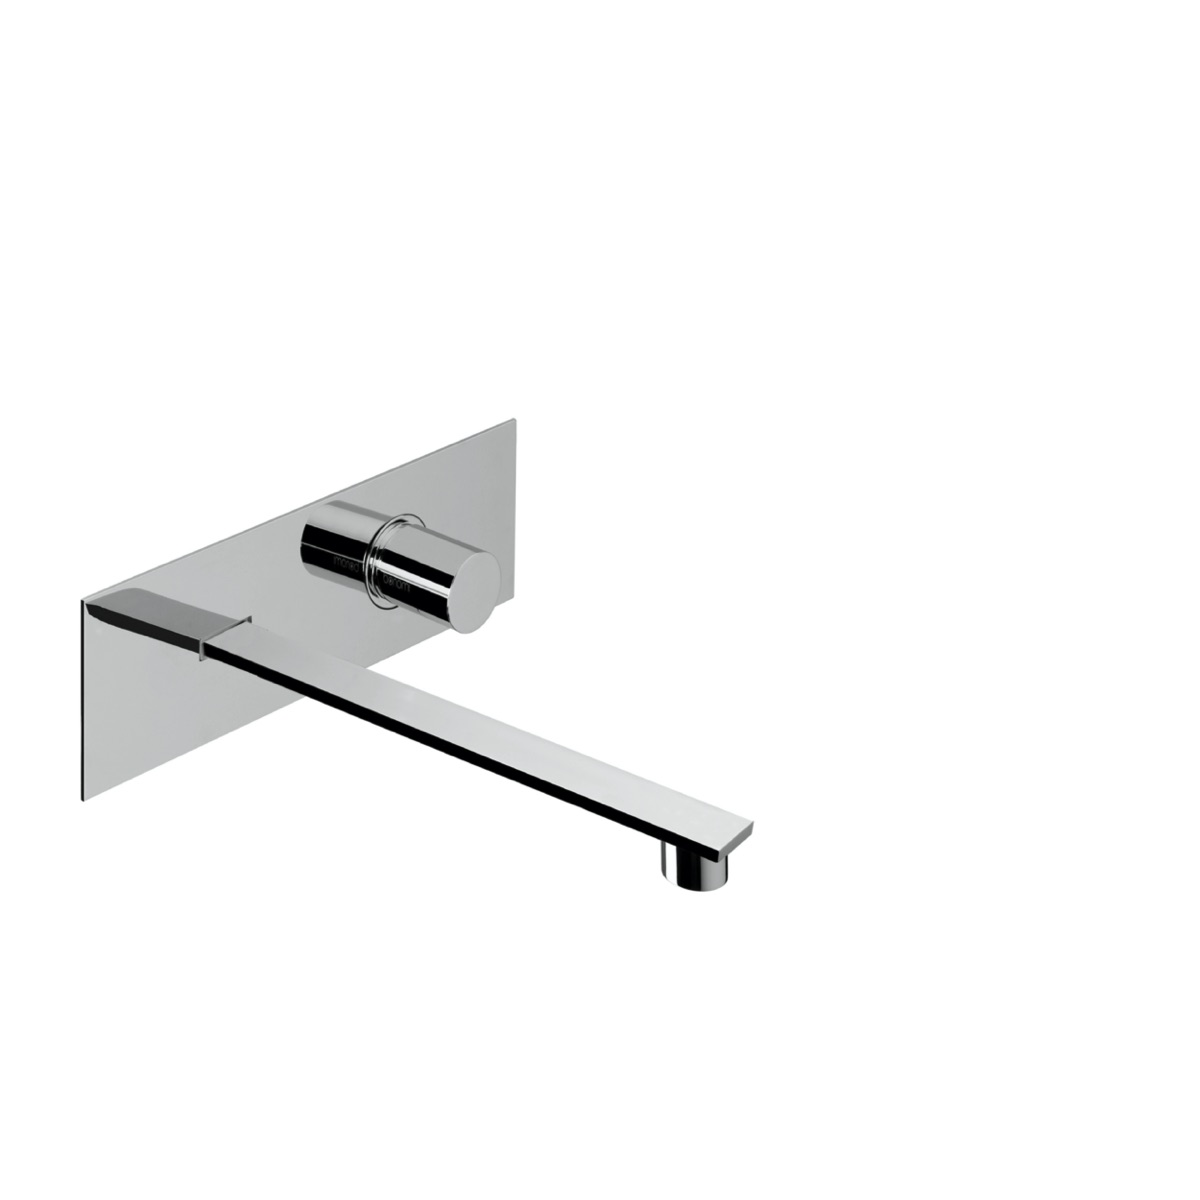 Wall mounted basin mixer with 212 mm spout  and plate